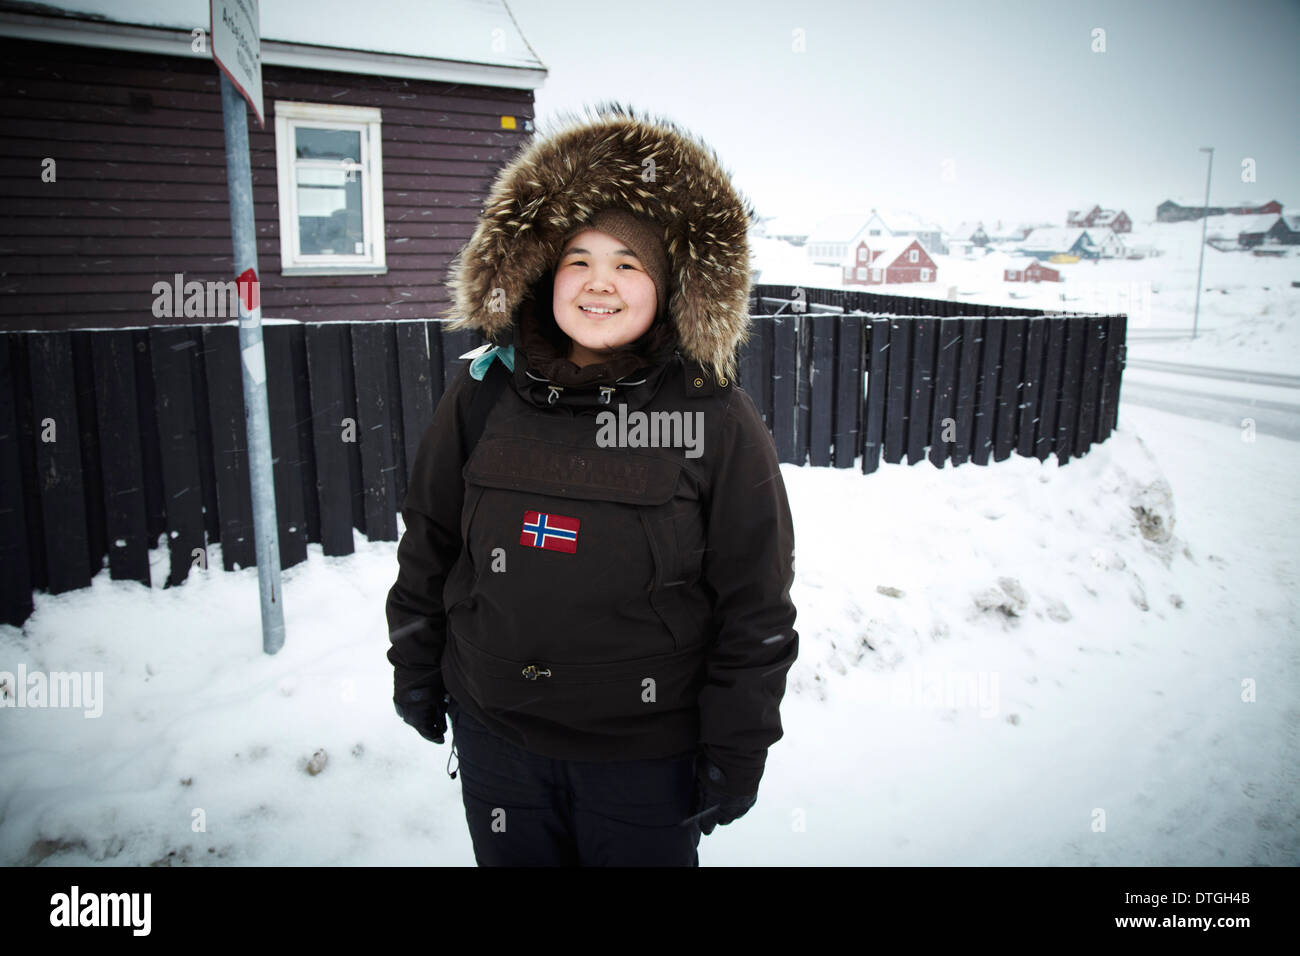 A young Inuit girl waiting for the bus in Nuuk center. - Stock Image